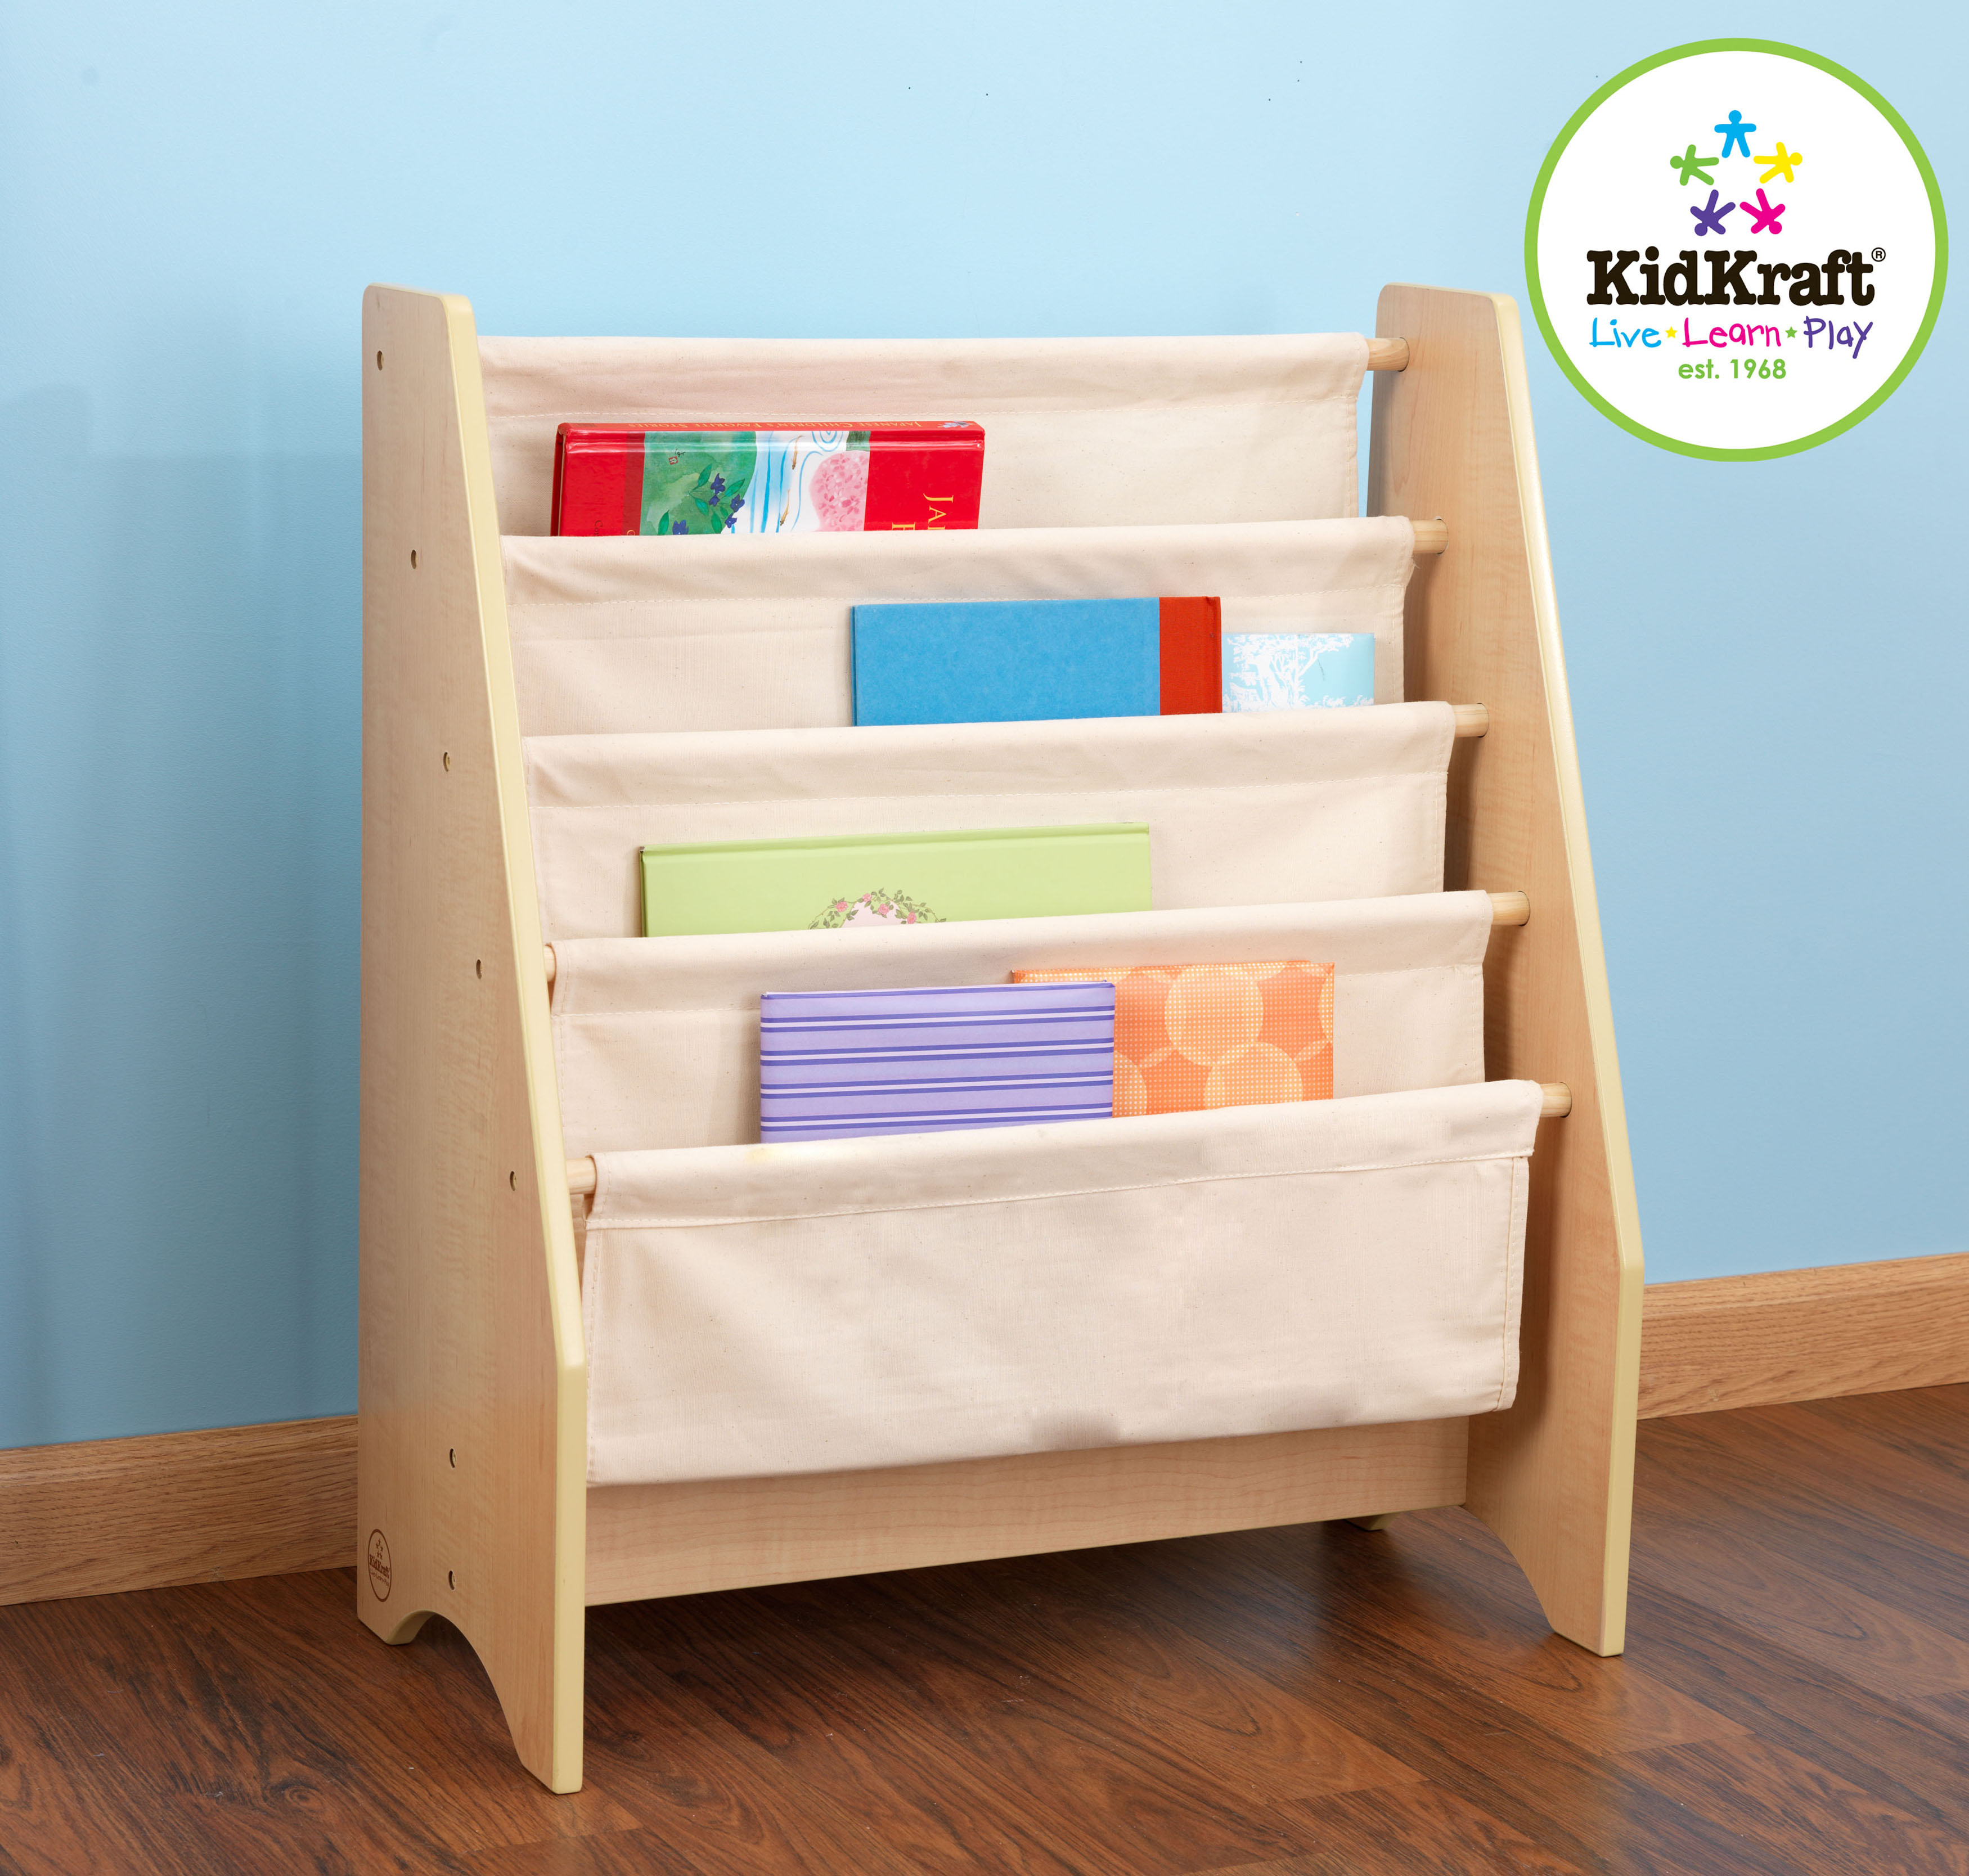 Sling Book Shelf in Natural Colours by Kidkraft